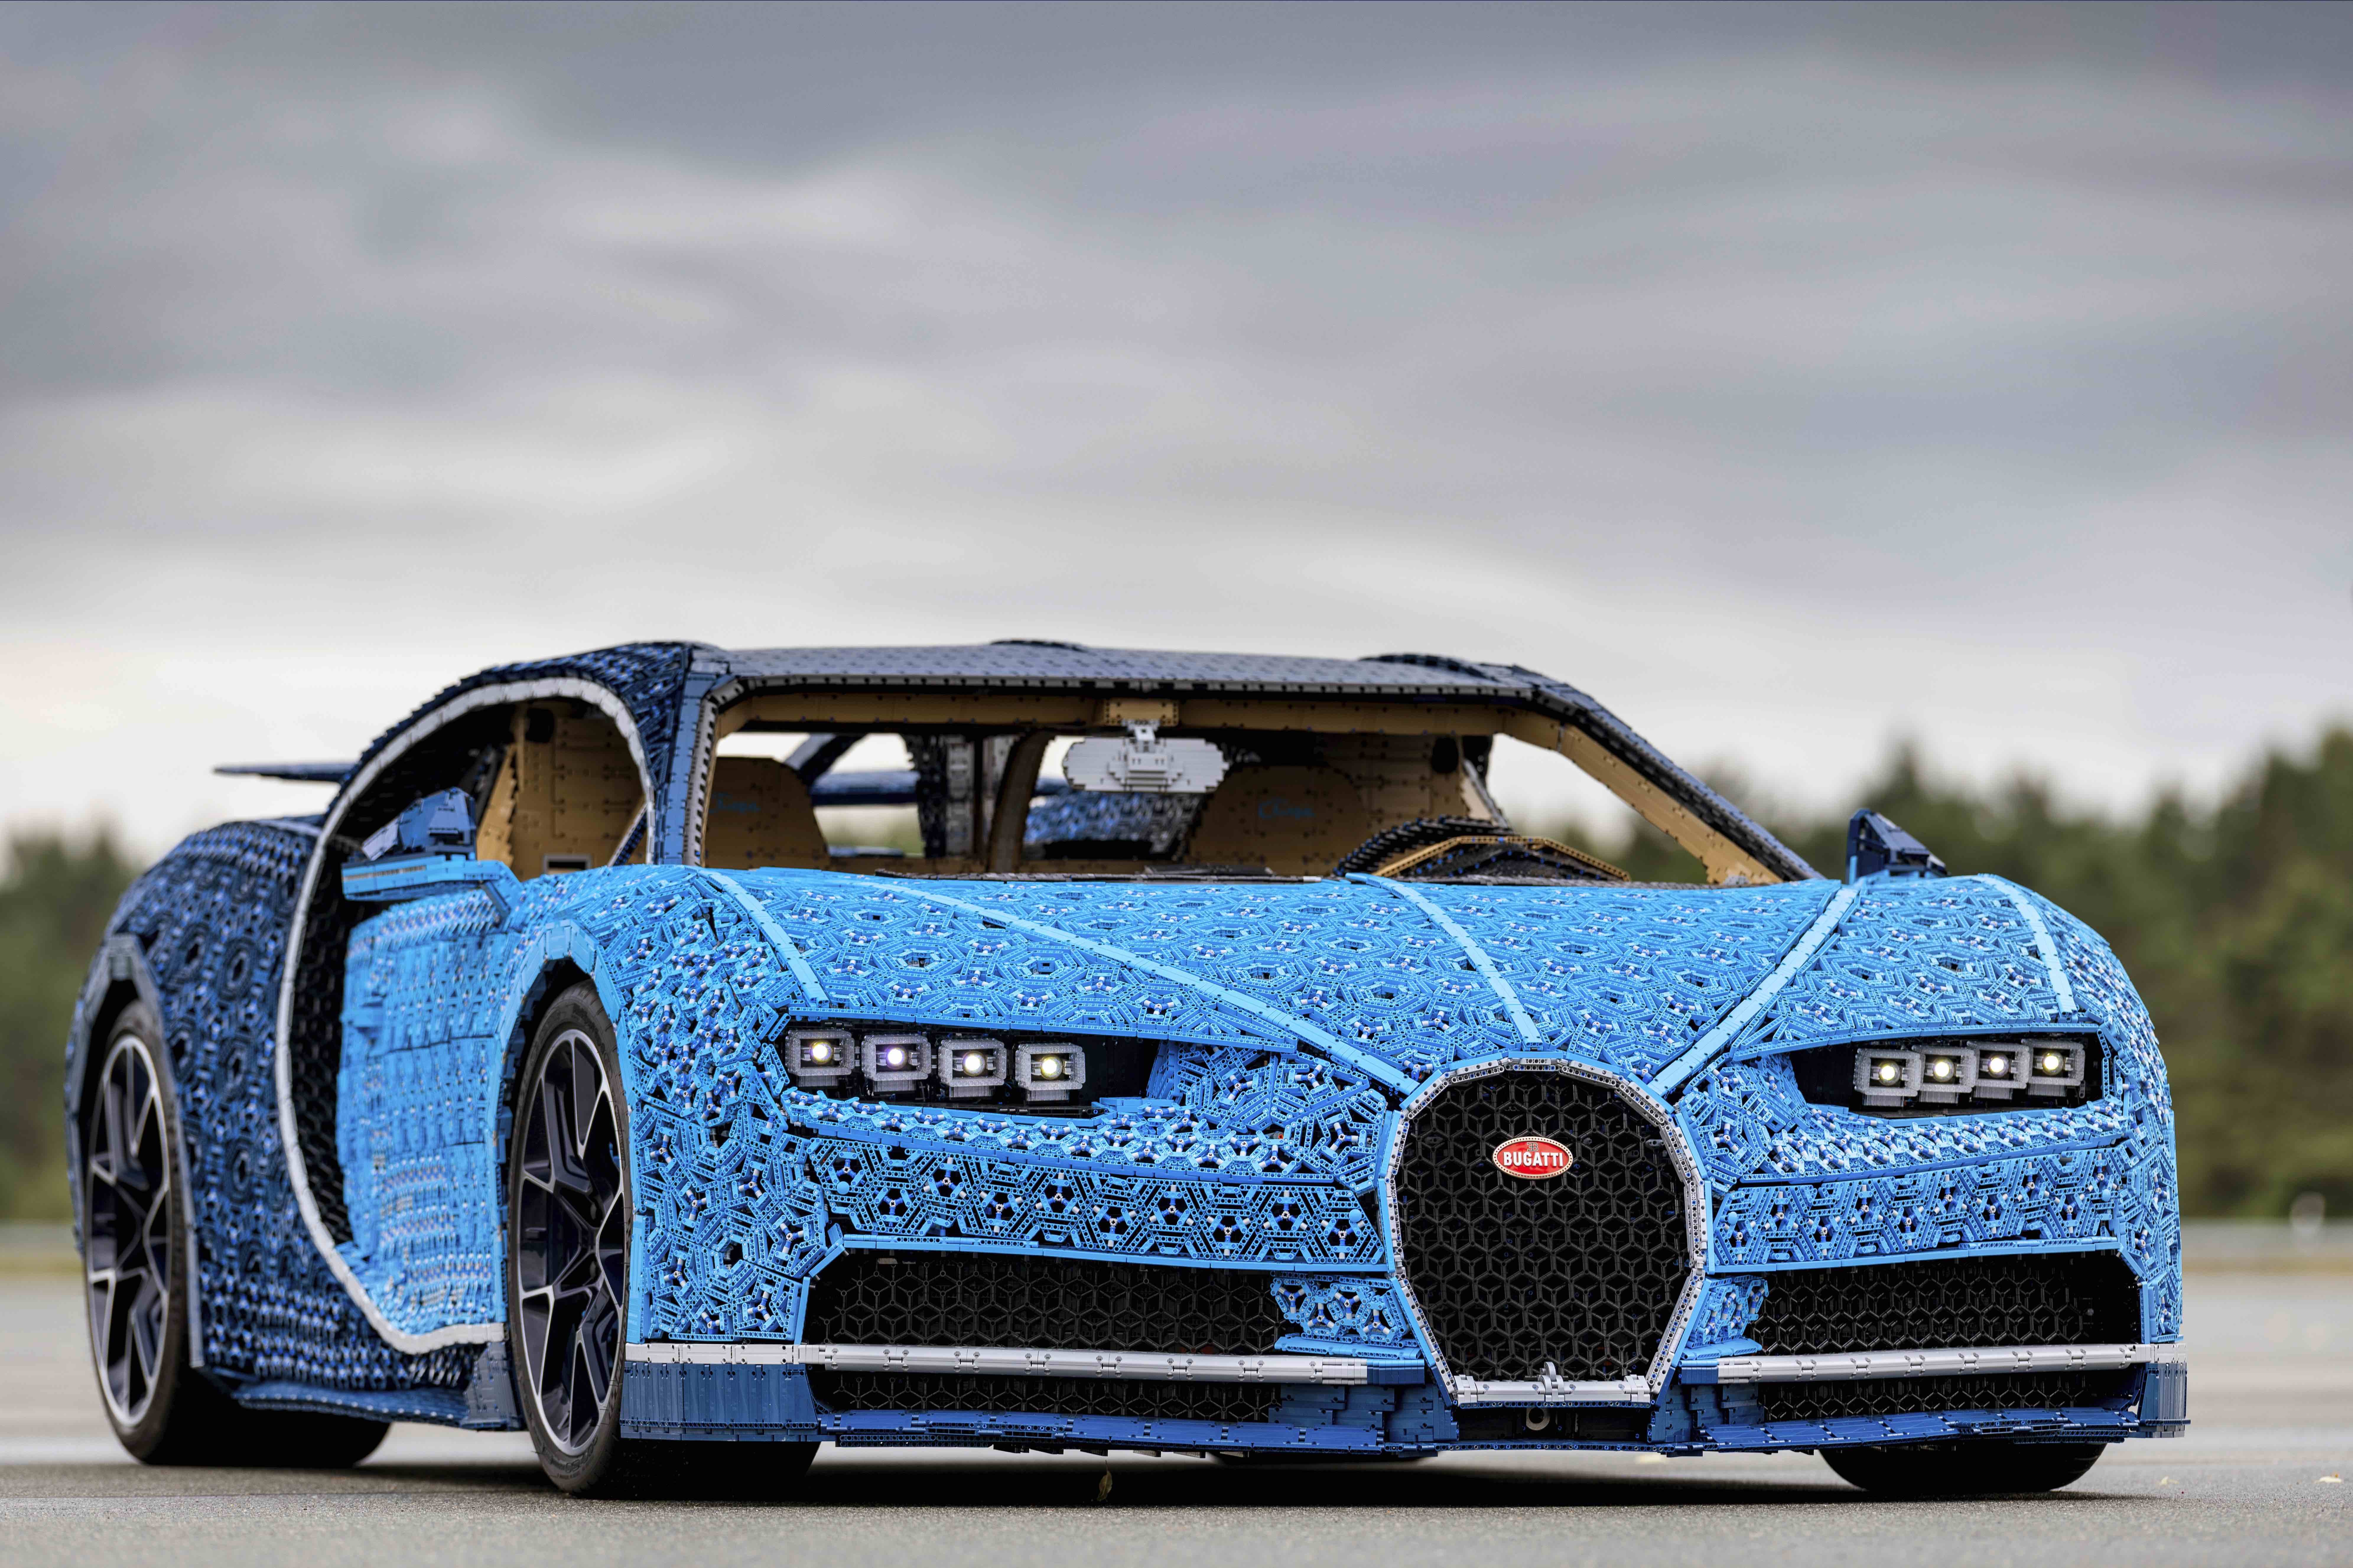 Incredibly, this really is made entirely out of Lego